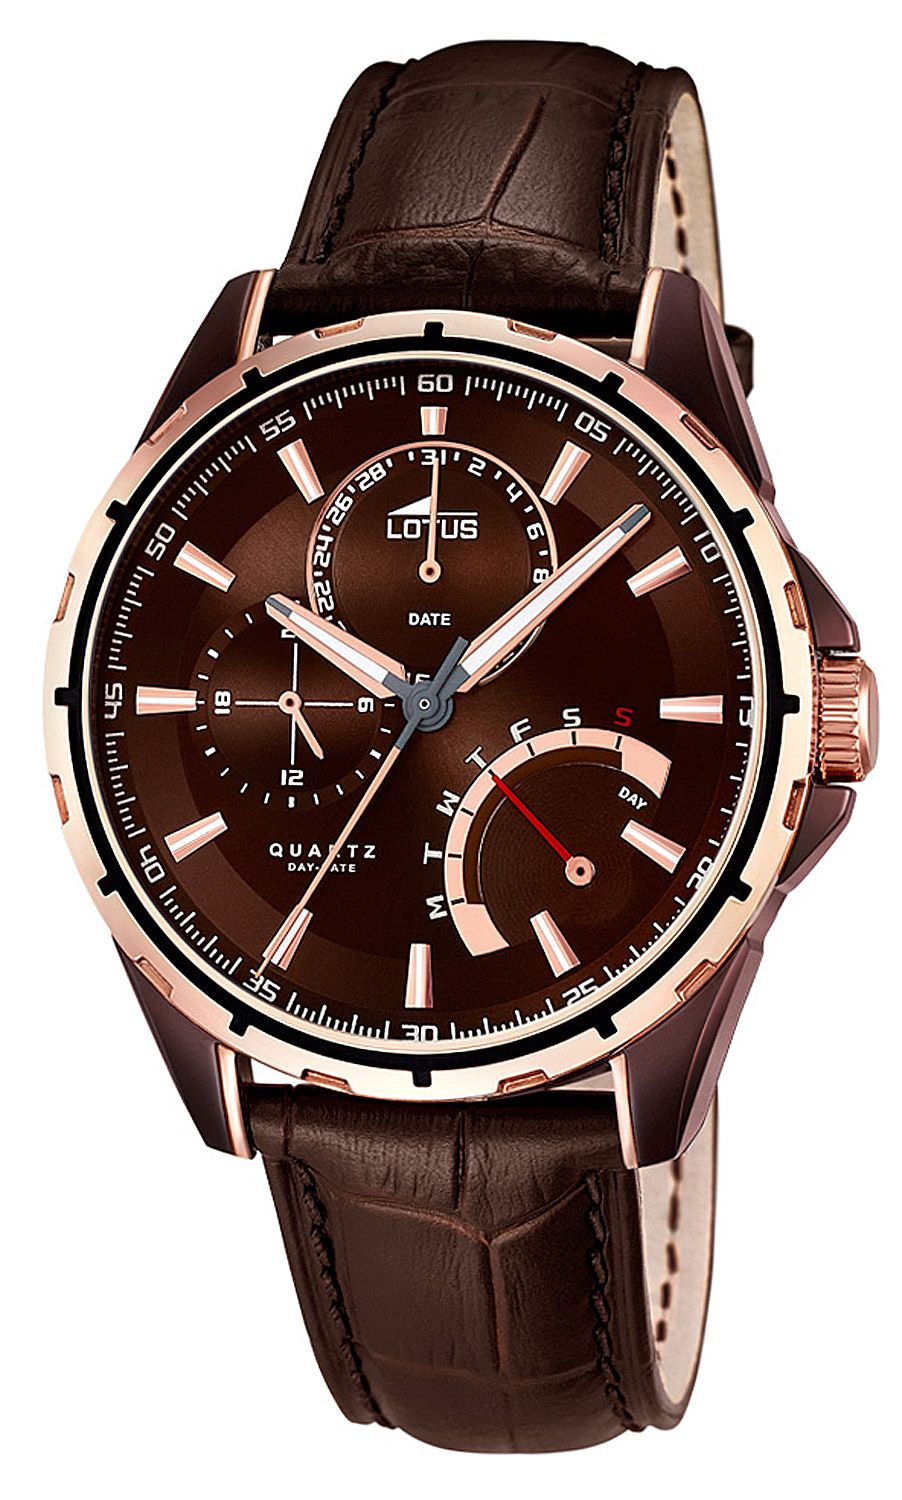 5db7eb23fefa Buy LOTUS 18211 1 Mens Watch now from uhrcenter Watch Shop. ✓Official Lotus  Stockist!